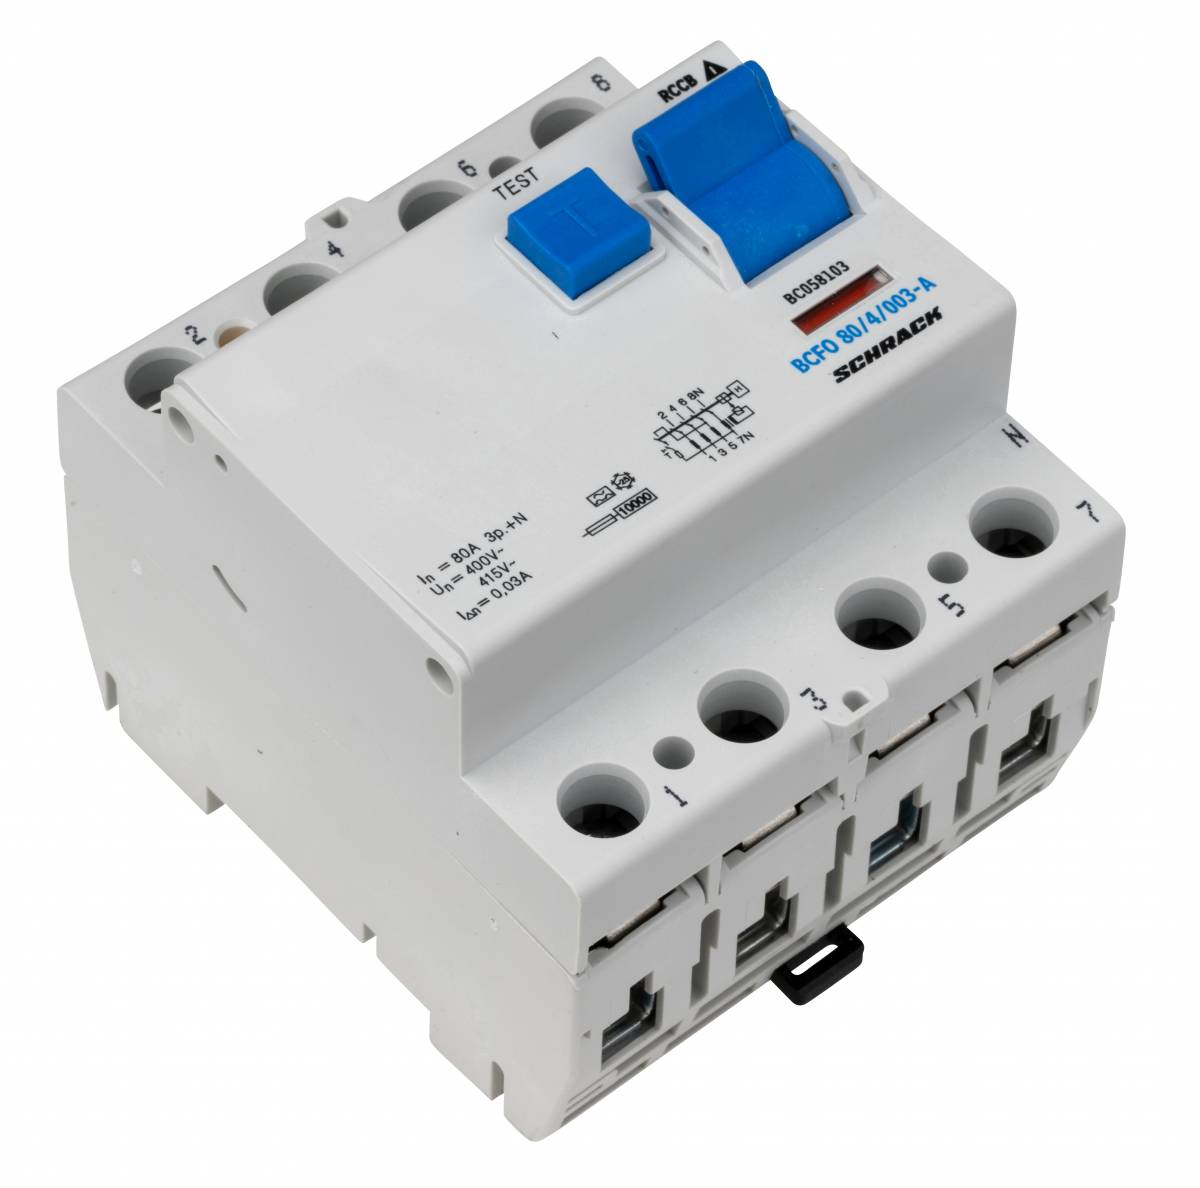 Residual current circuit breaker, 80A, 4-pole,30mA, type A